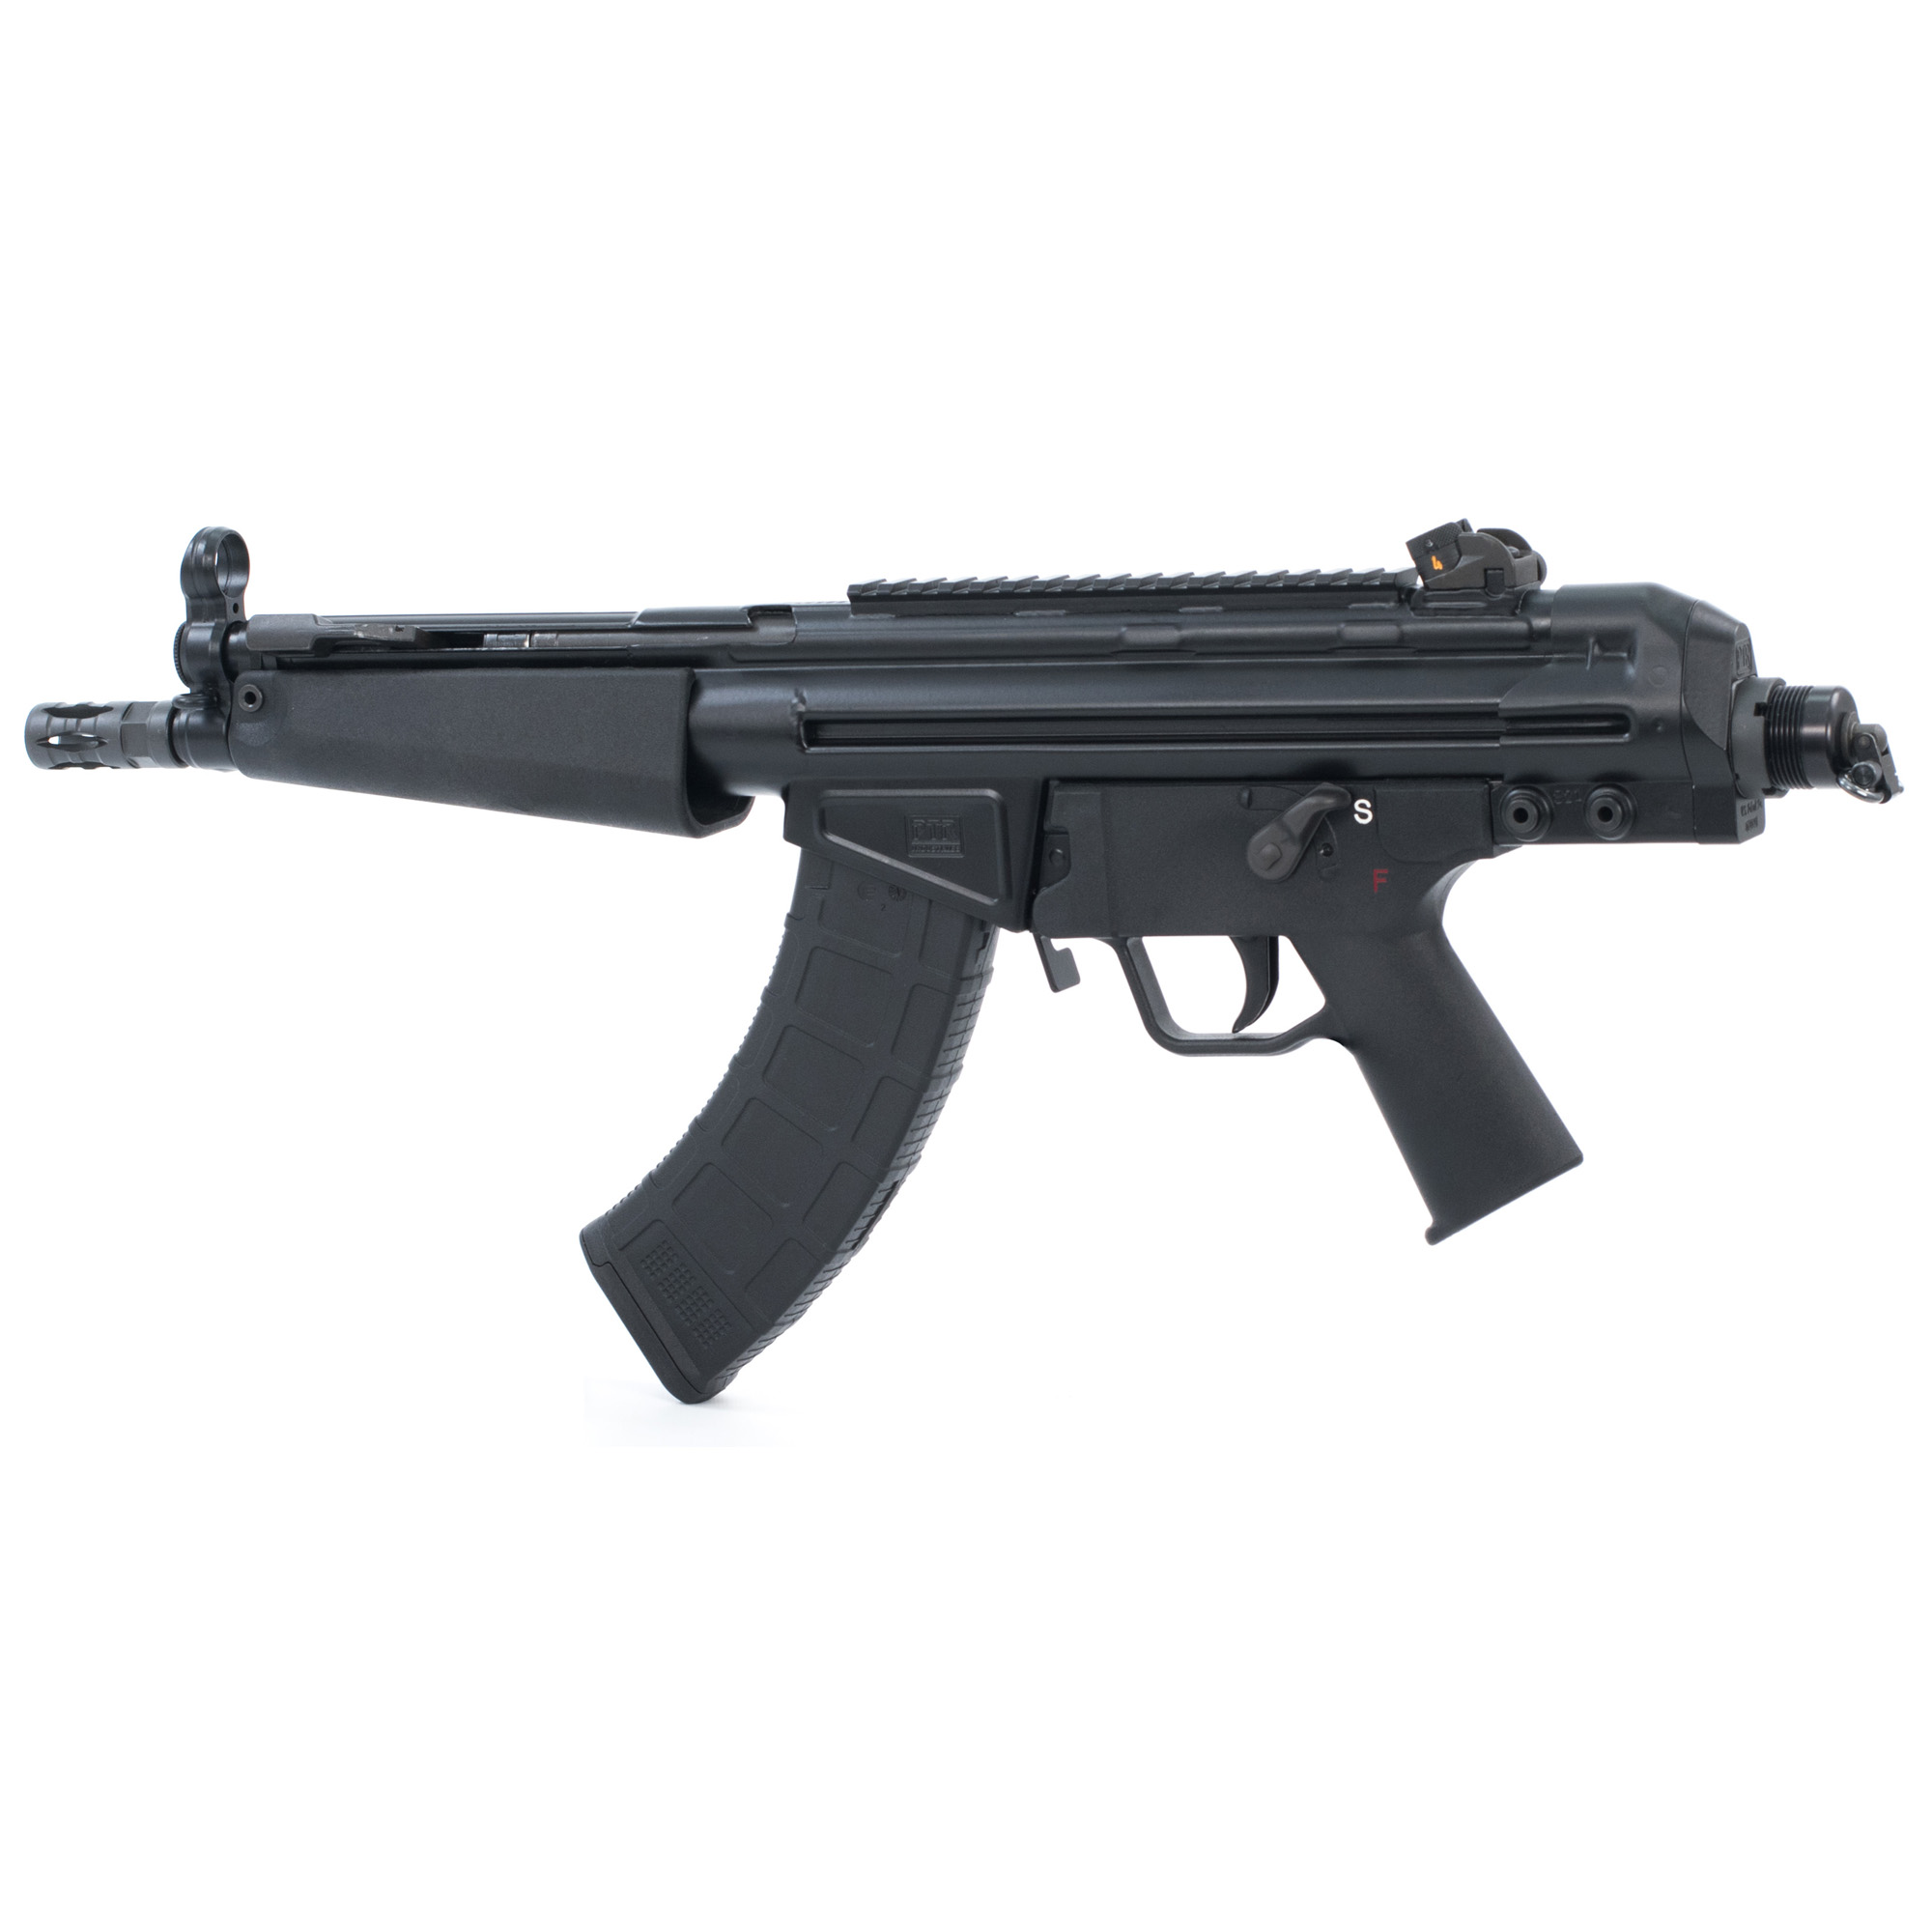 """The 32P pistol features a classic style polymer handguard with an 8.5"""" bull barrel. The precision-welded top rail allows the addition of your favorite optic or use the traditional iron sights (included). The end cap is compatible with M4 buffer tubes or the included swivel end adapter. Includes one 30-round magazine."""